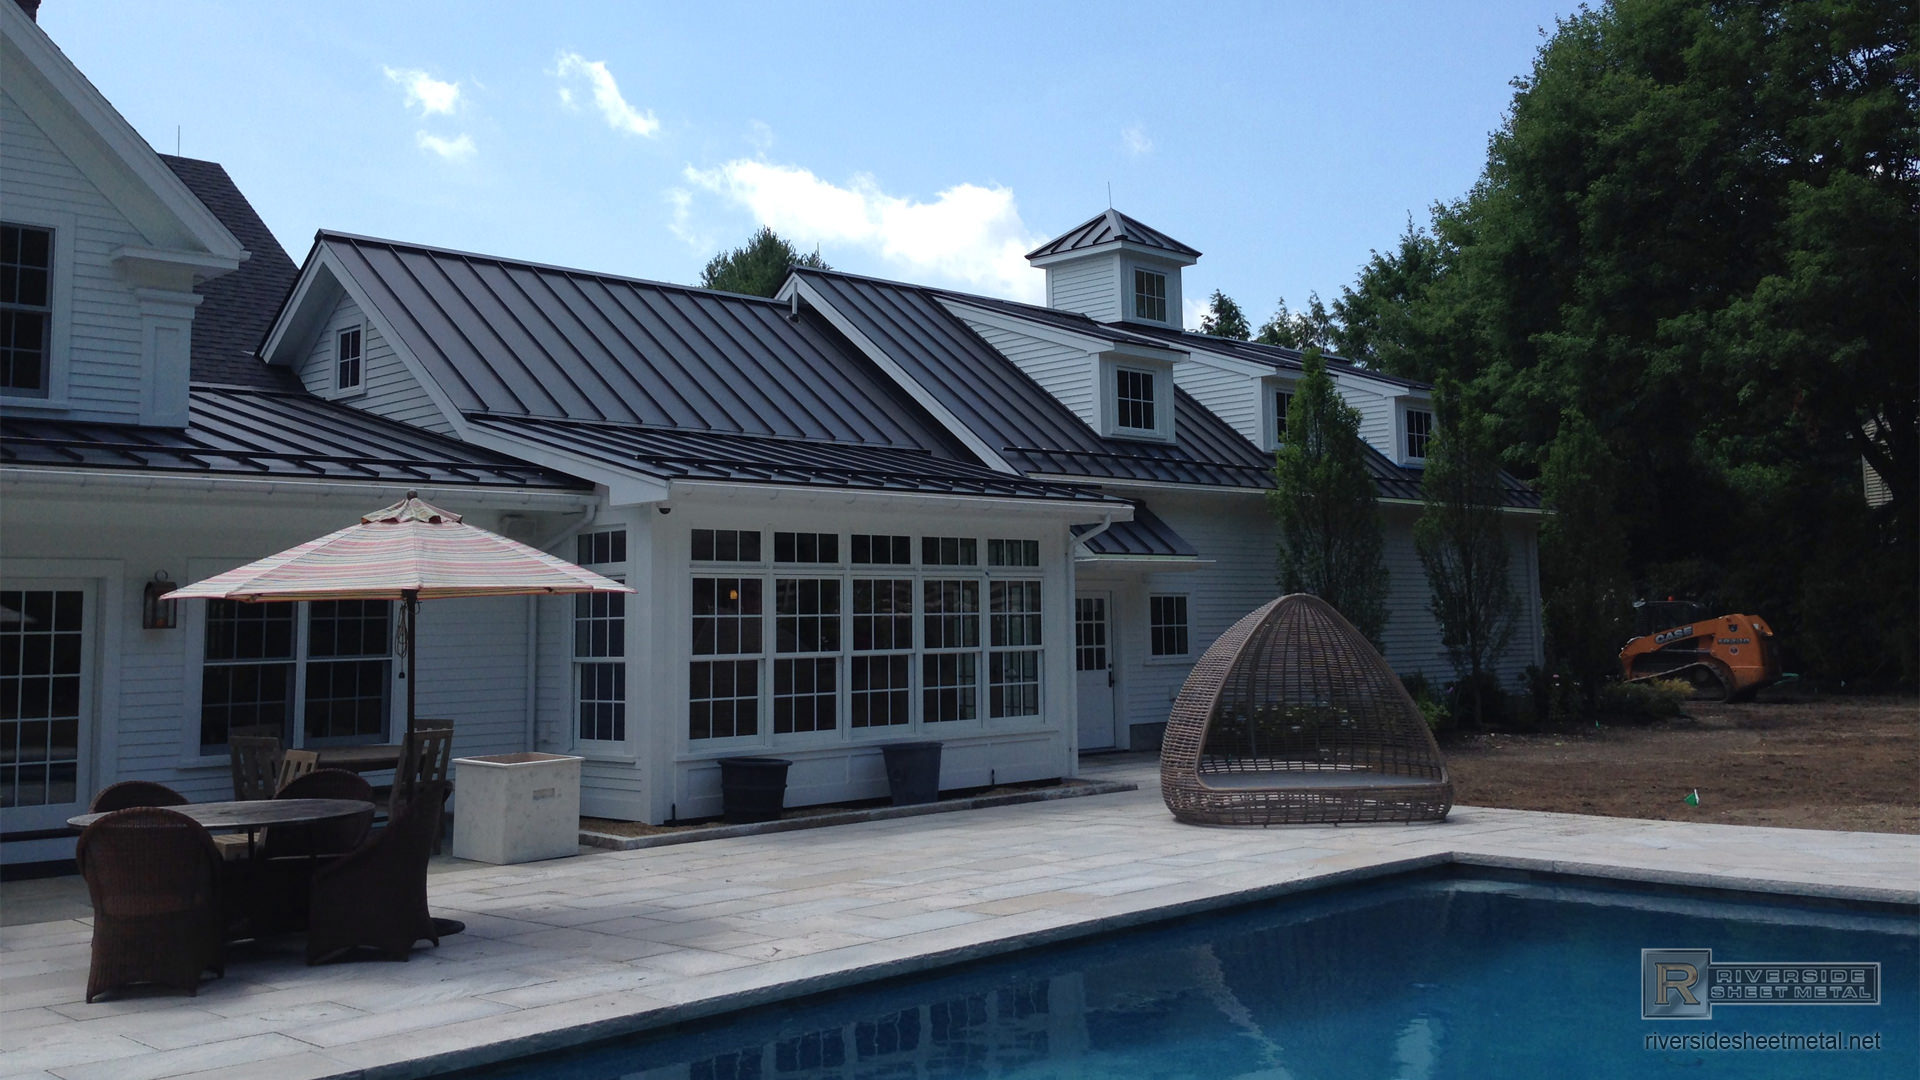 Matte black aluminum roofing with colorgard snow retention system